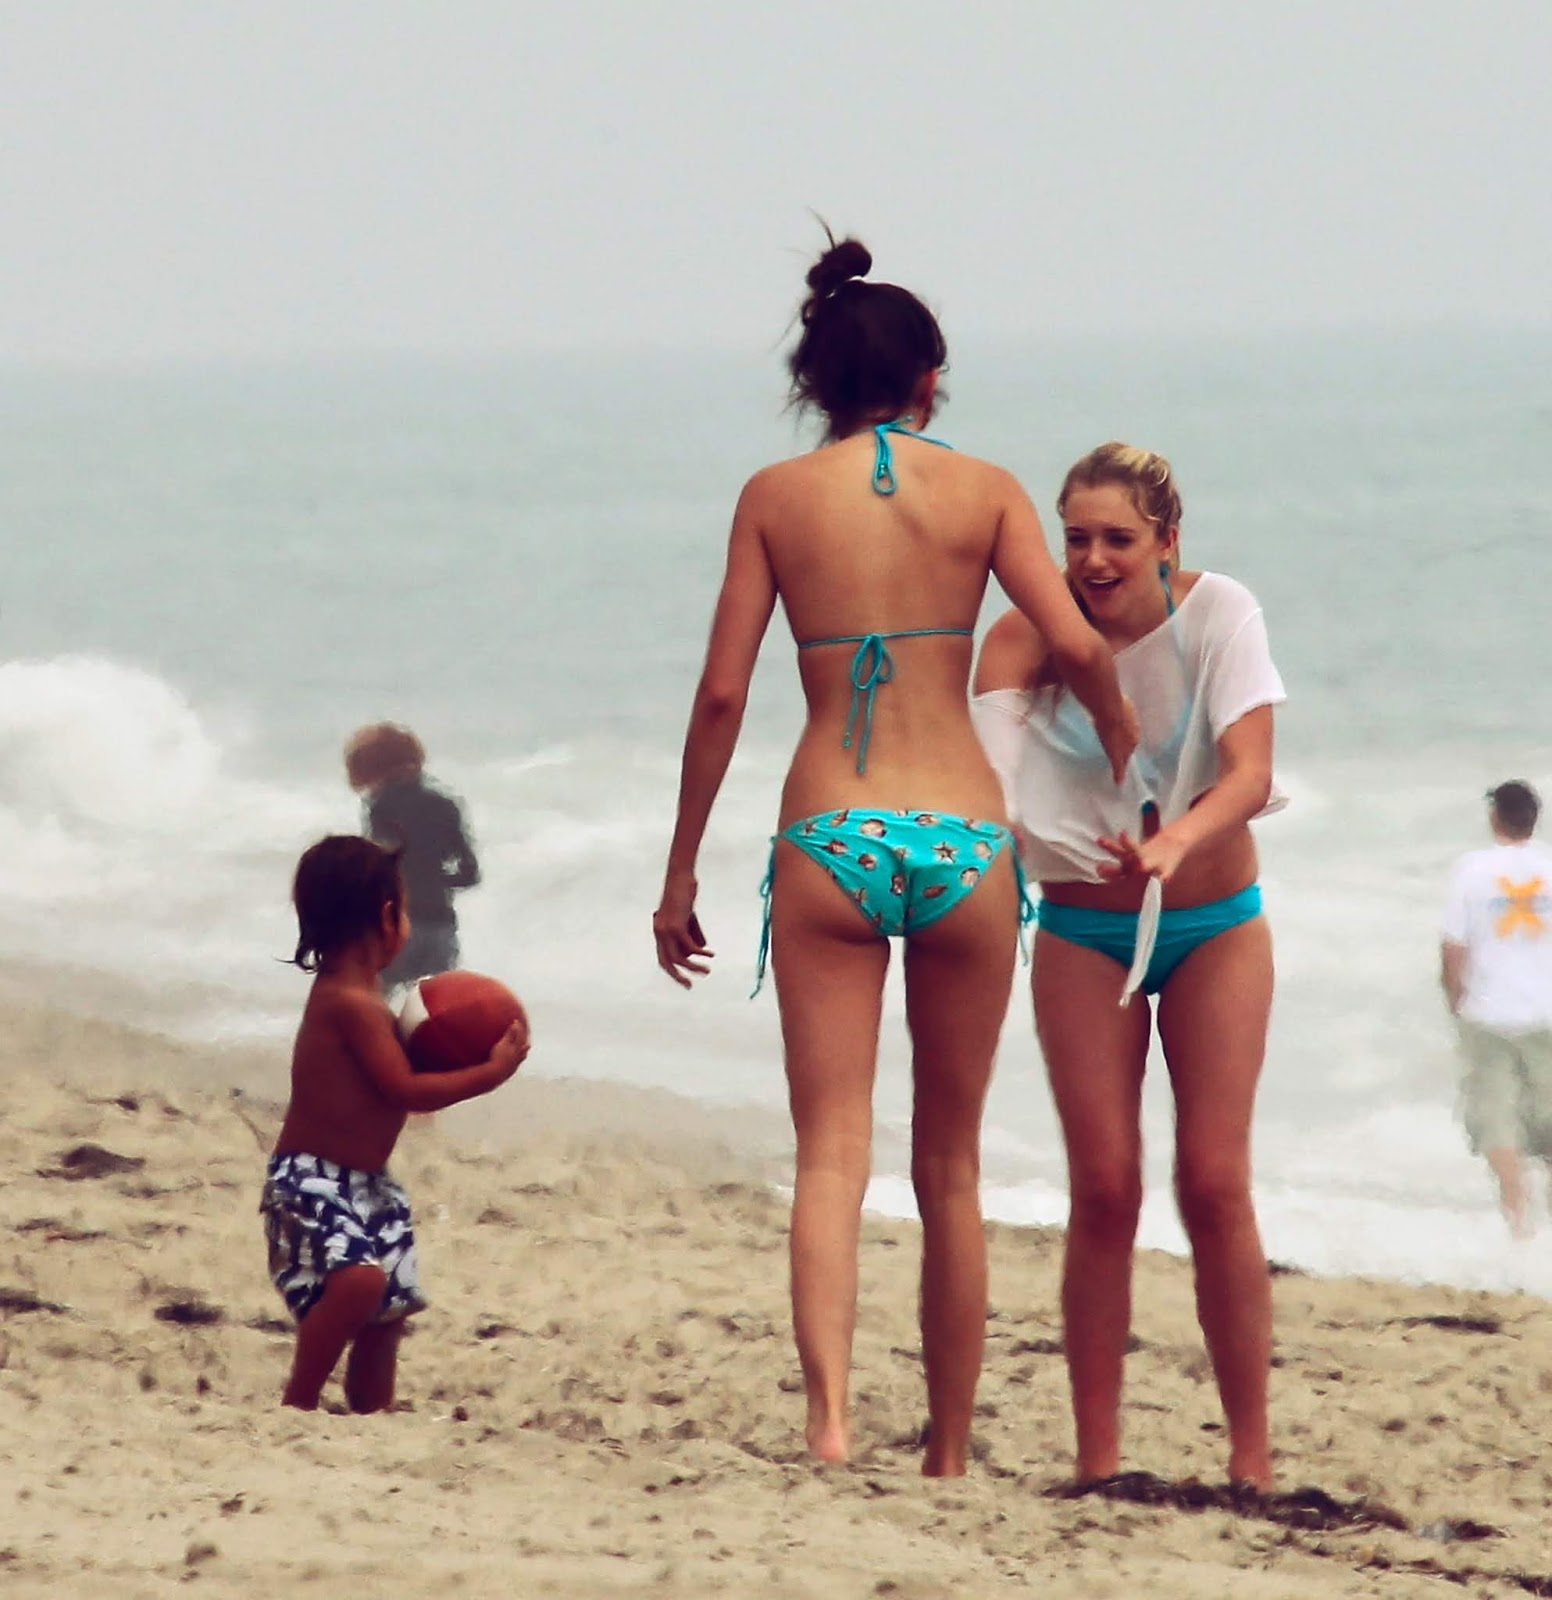 03 - At a Beach with friends in Malibu California on July 14, 2012